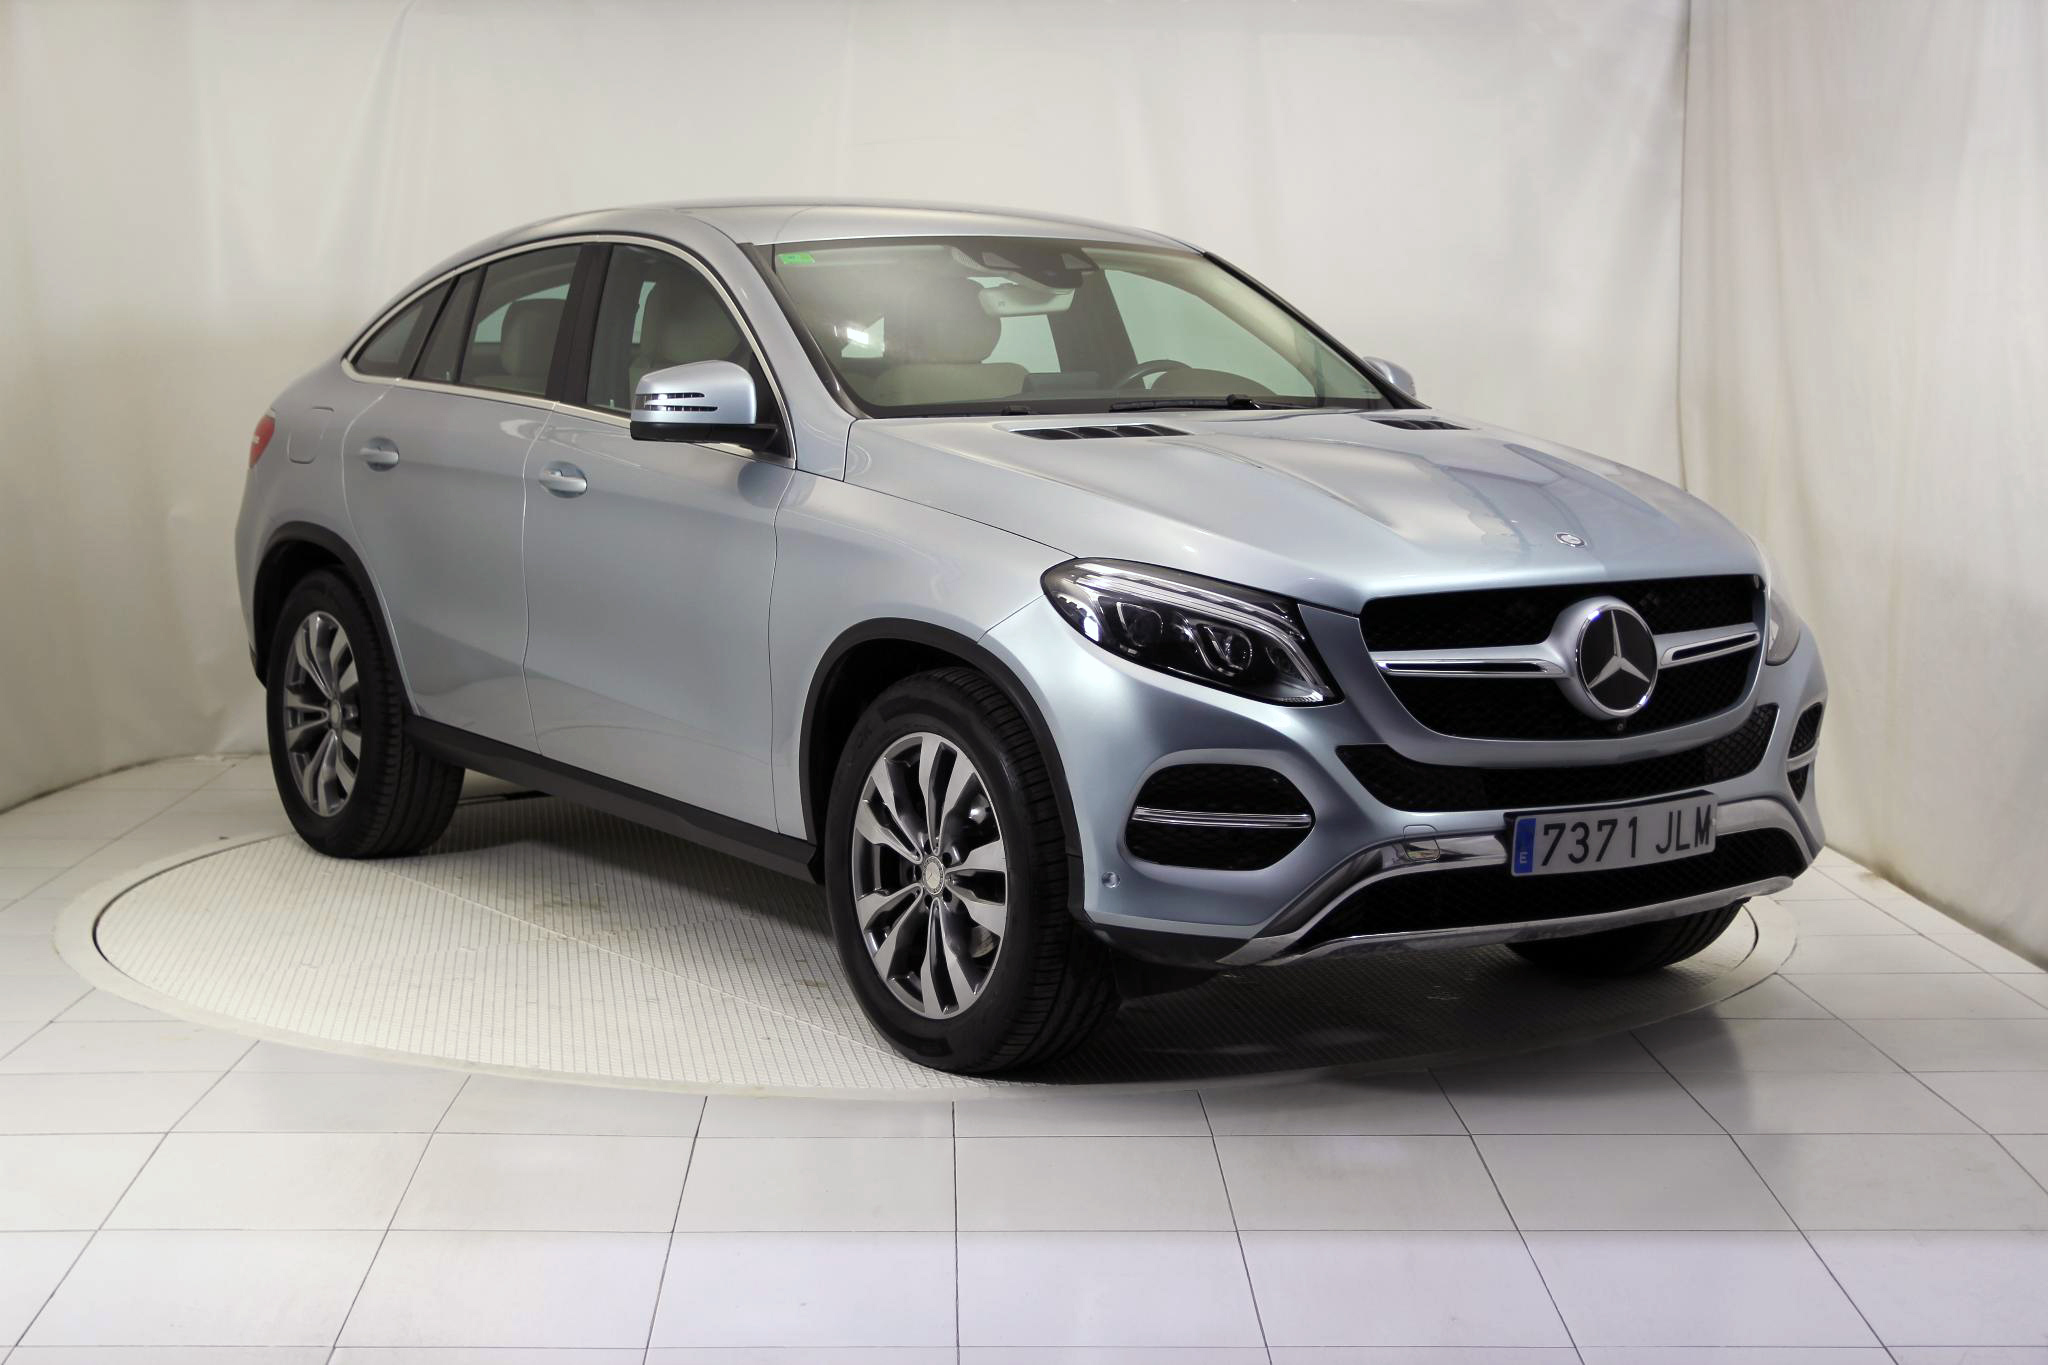 Mercedes-Benz Clase GLE GLE COUPE 350 D 4MATIC imagen 4